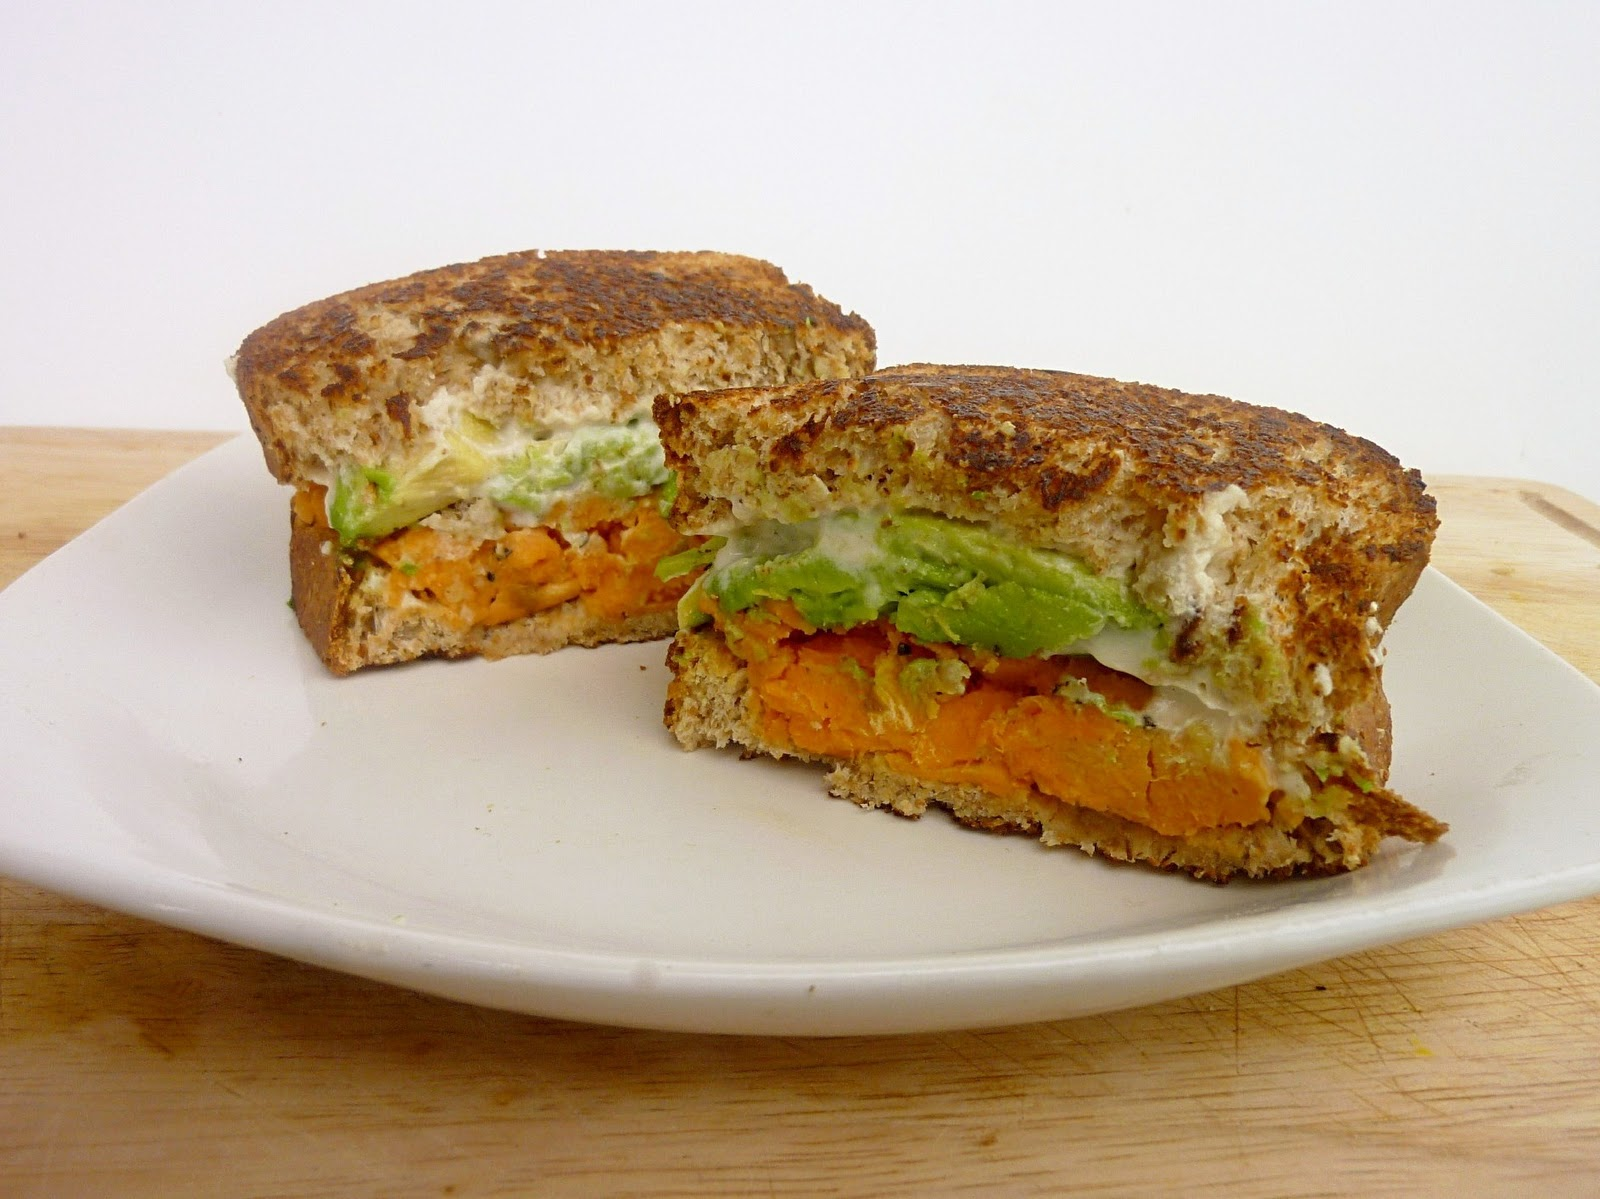 ... avocado salad sandwich spiced avocado sandwich recipes dishmaps spiced